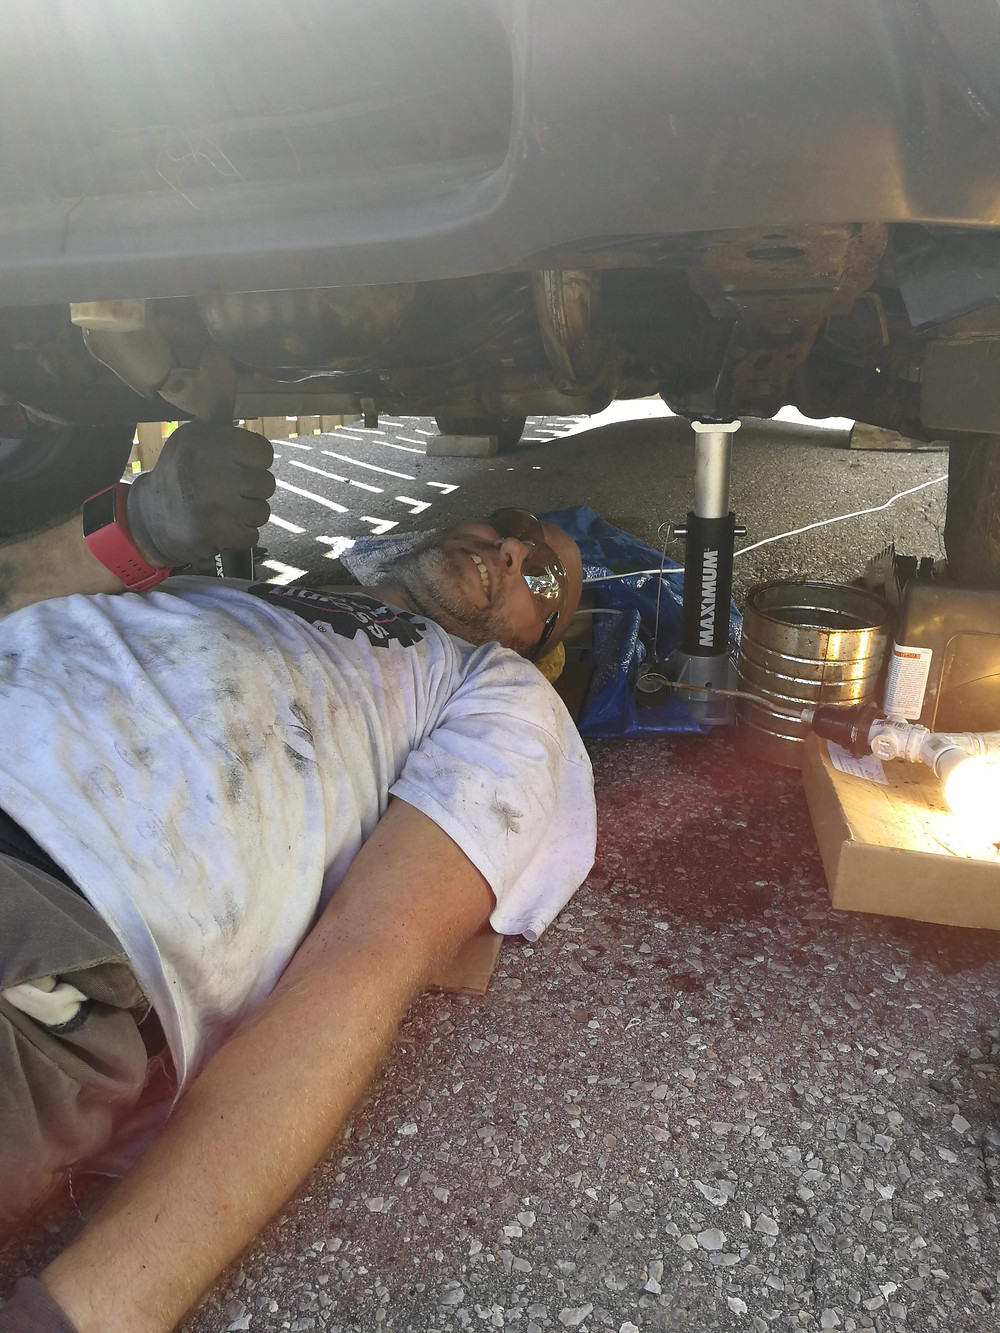 This is me laying on my dirty driveway fixing my 2003 Subaru Forester.